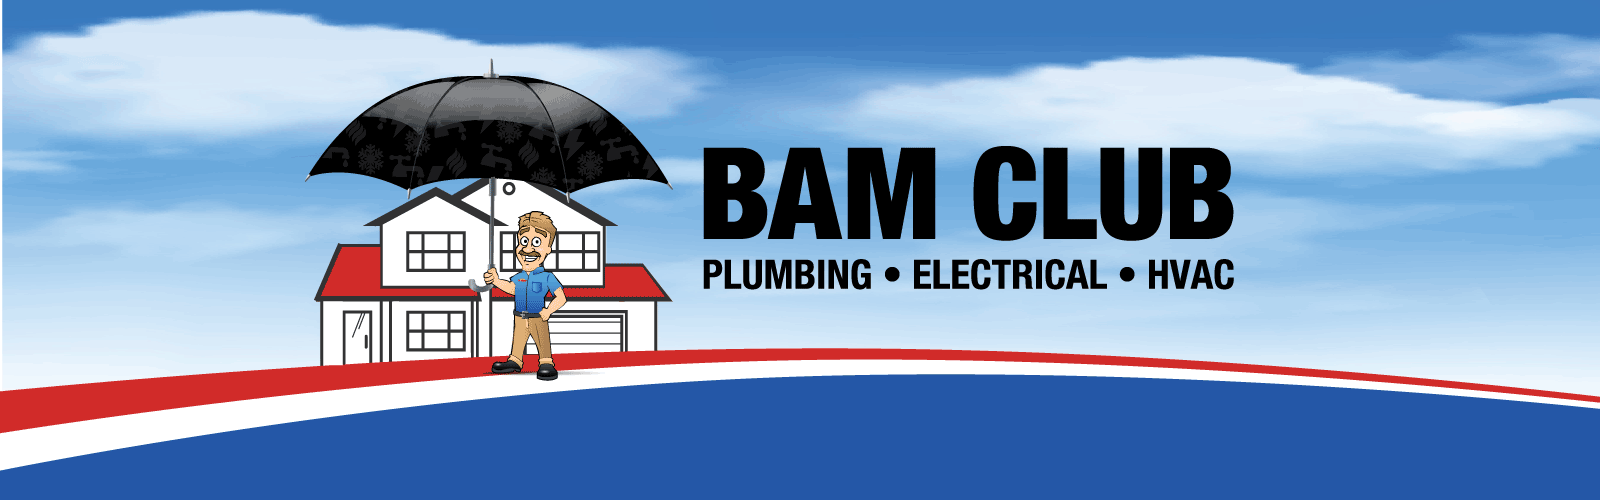 BAM Club - Bonney Automatic Maintenance